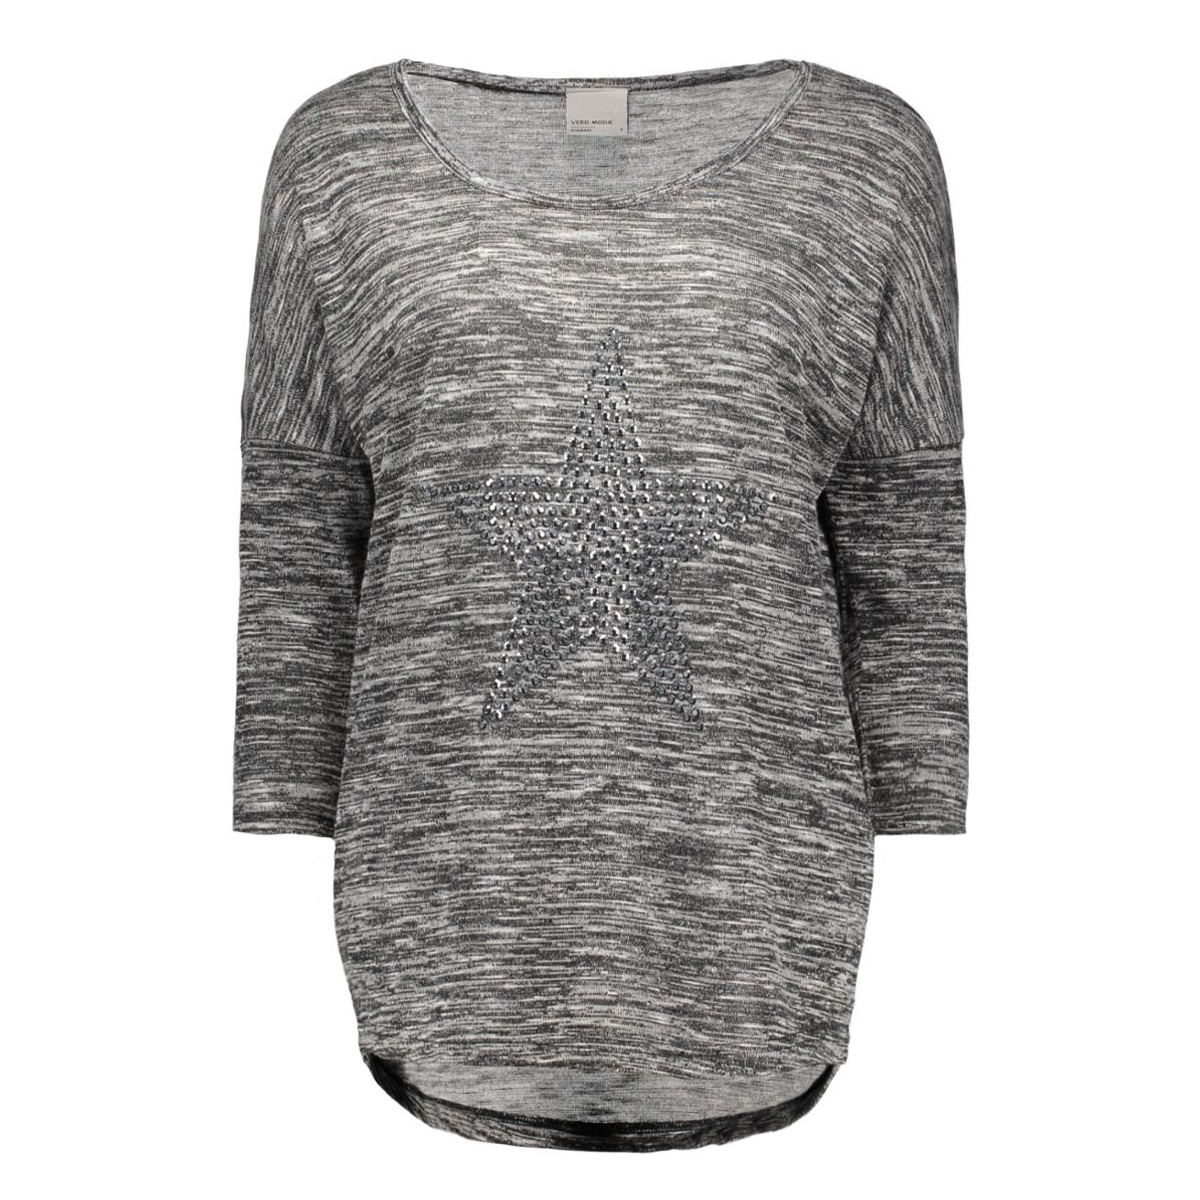 vmsabi star 3/4 top nfs 10162902 vero moda t-shirt dark grey melange